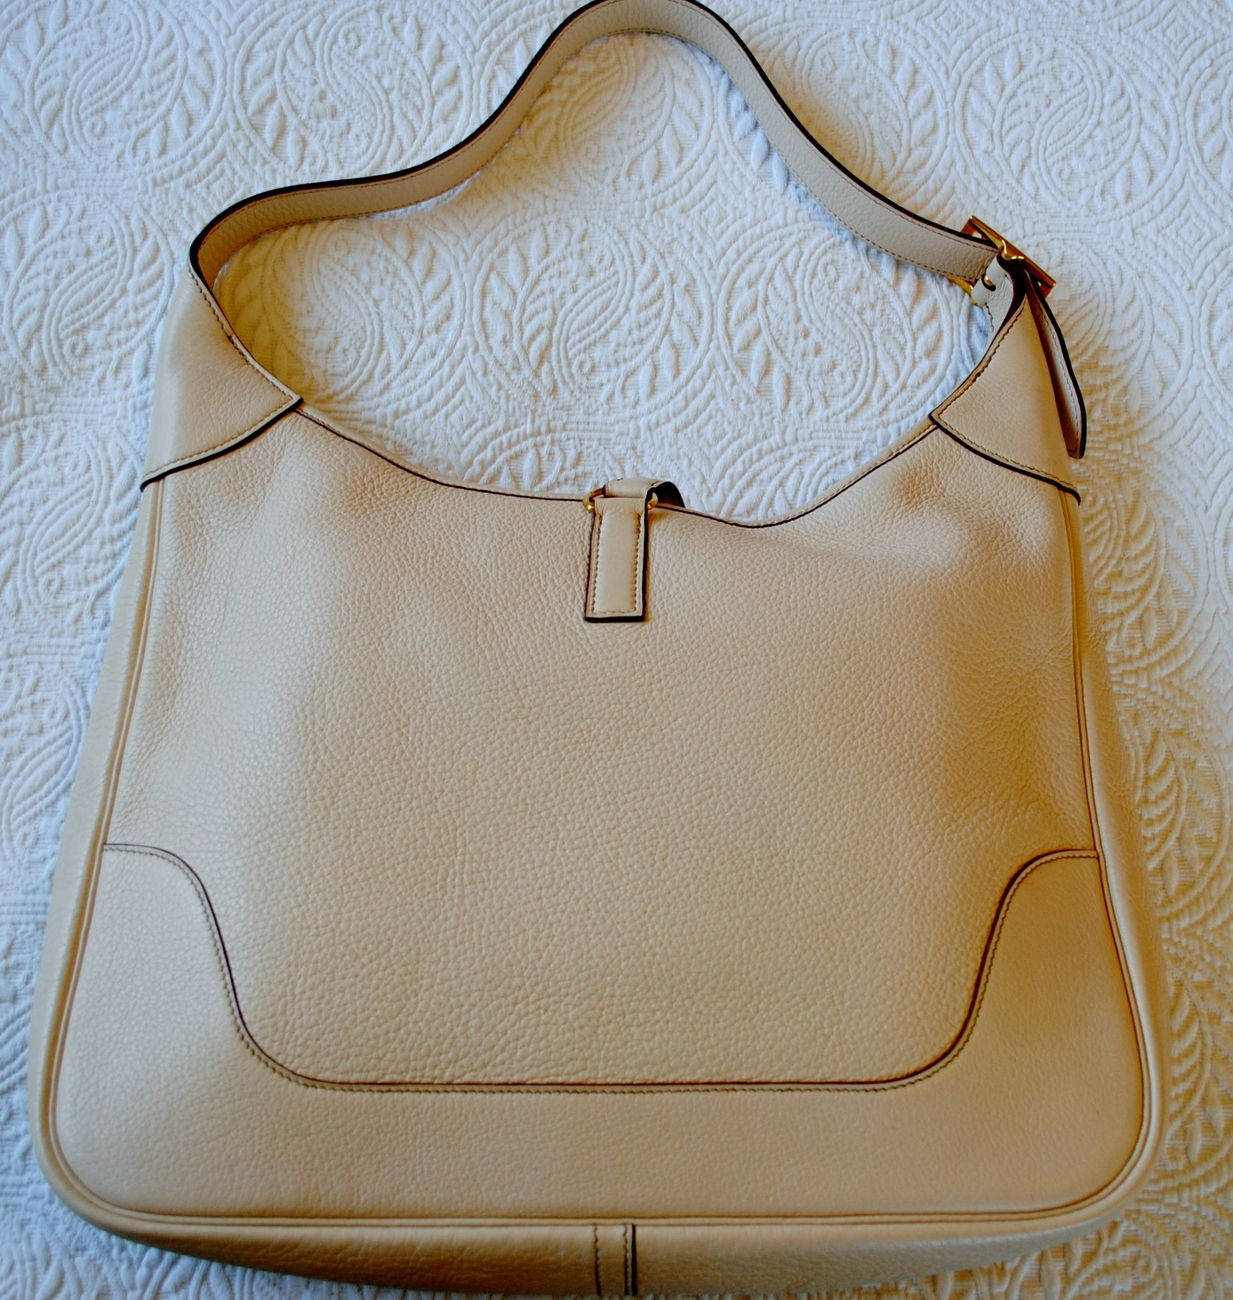 Hermes Baby Gifts Uk : Hermes trim ii handbag cream color women s handbags bags